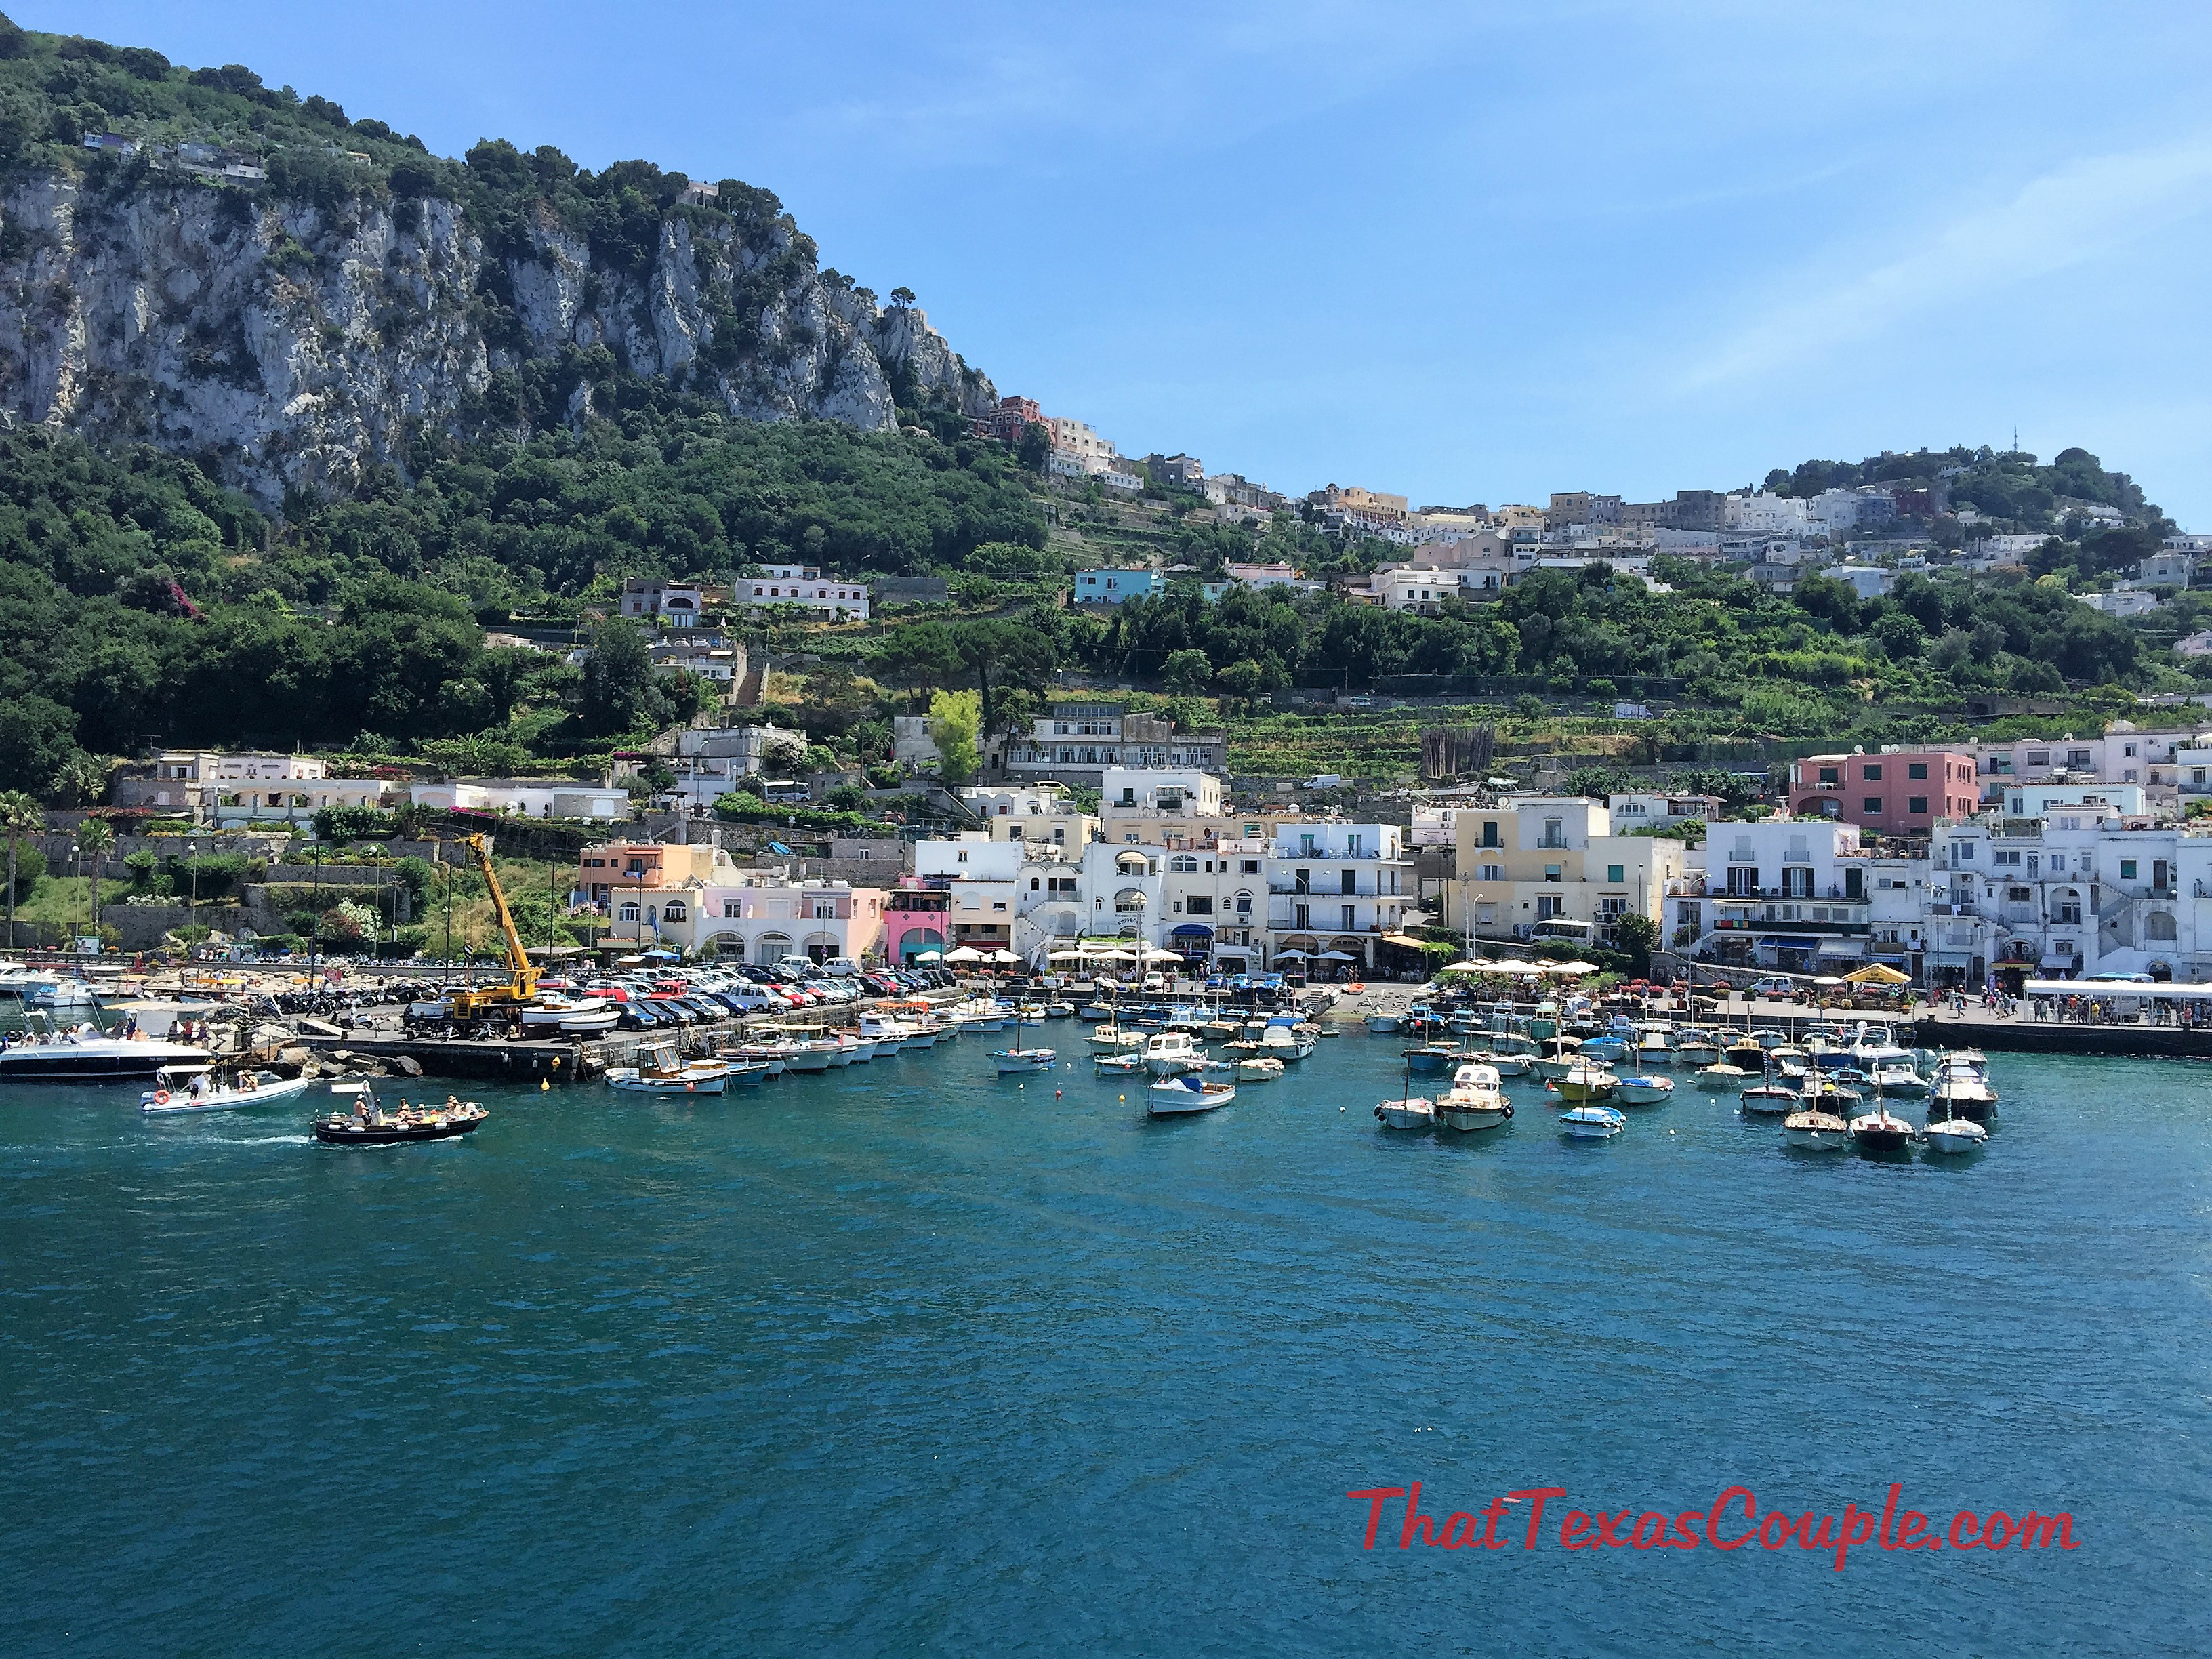 Capri, Italy - Michelle - That Texas Couple